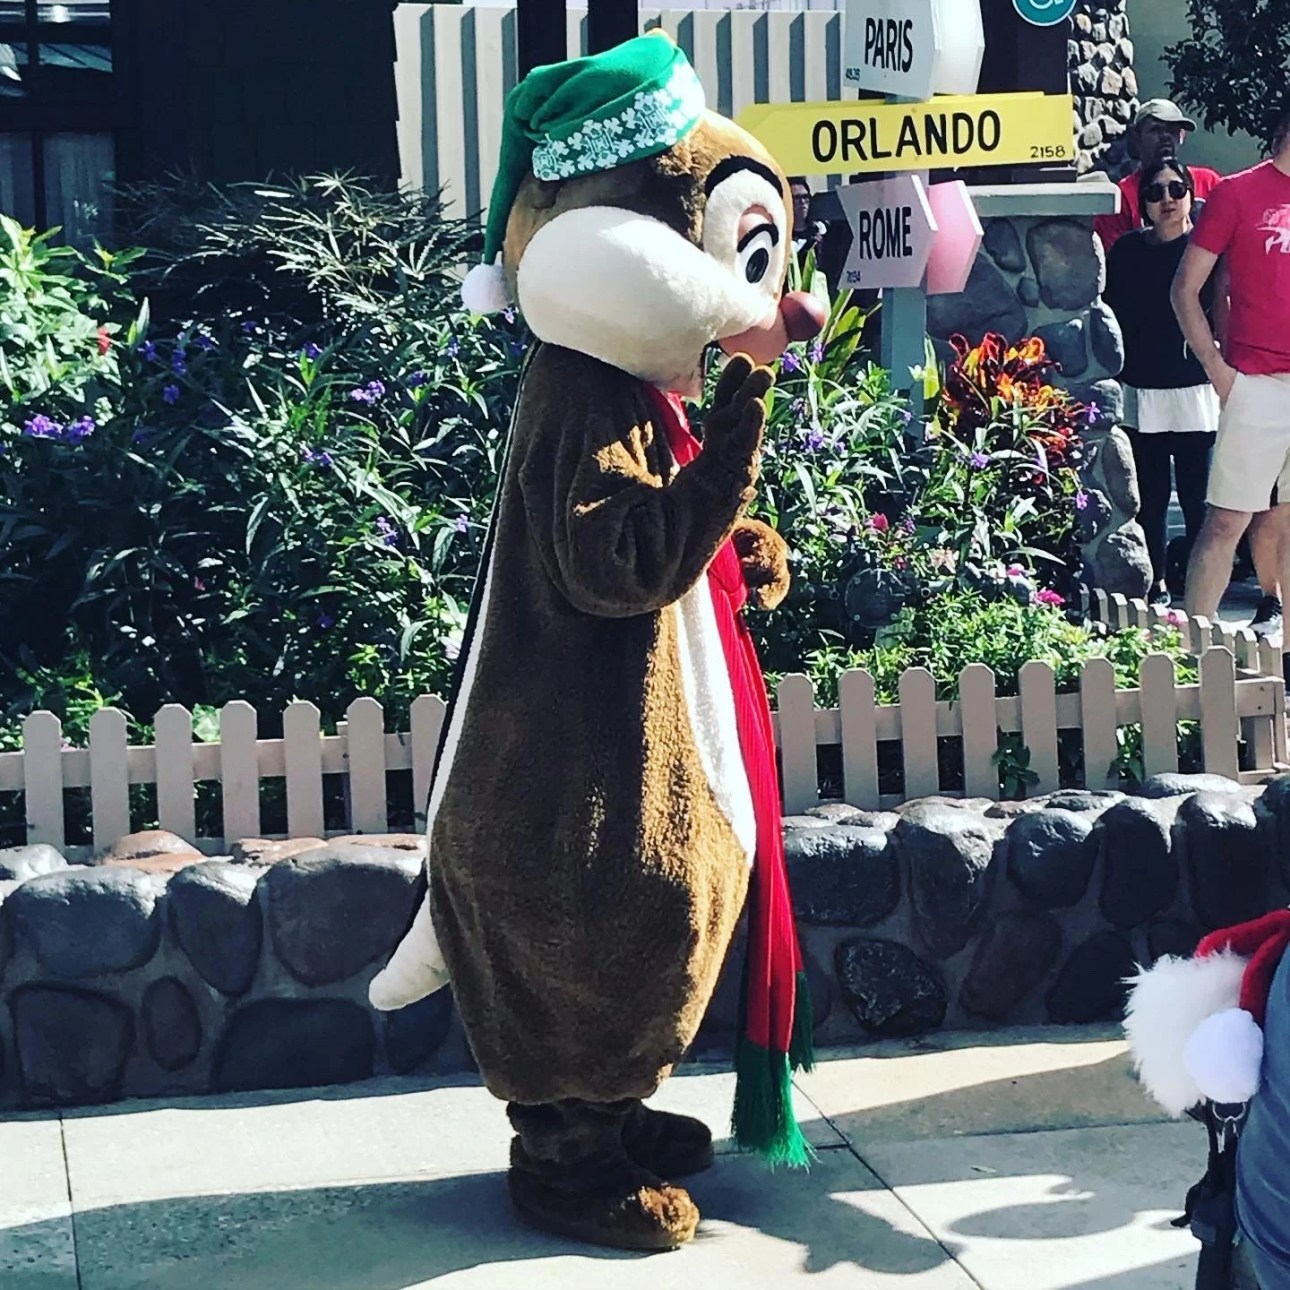 Chip dressed as an elf for Christmas in Walt Disney World